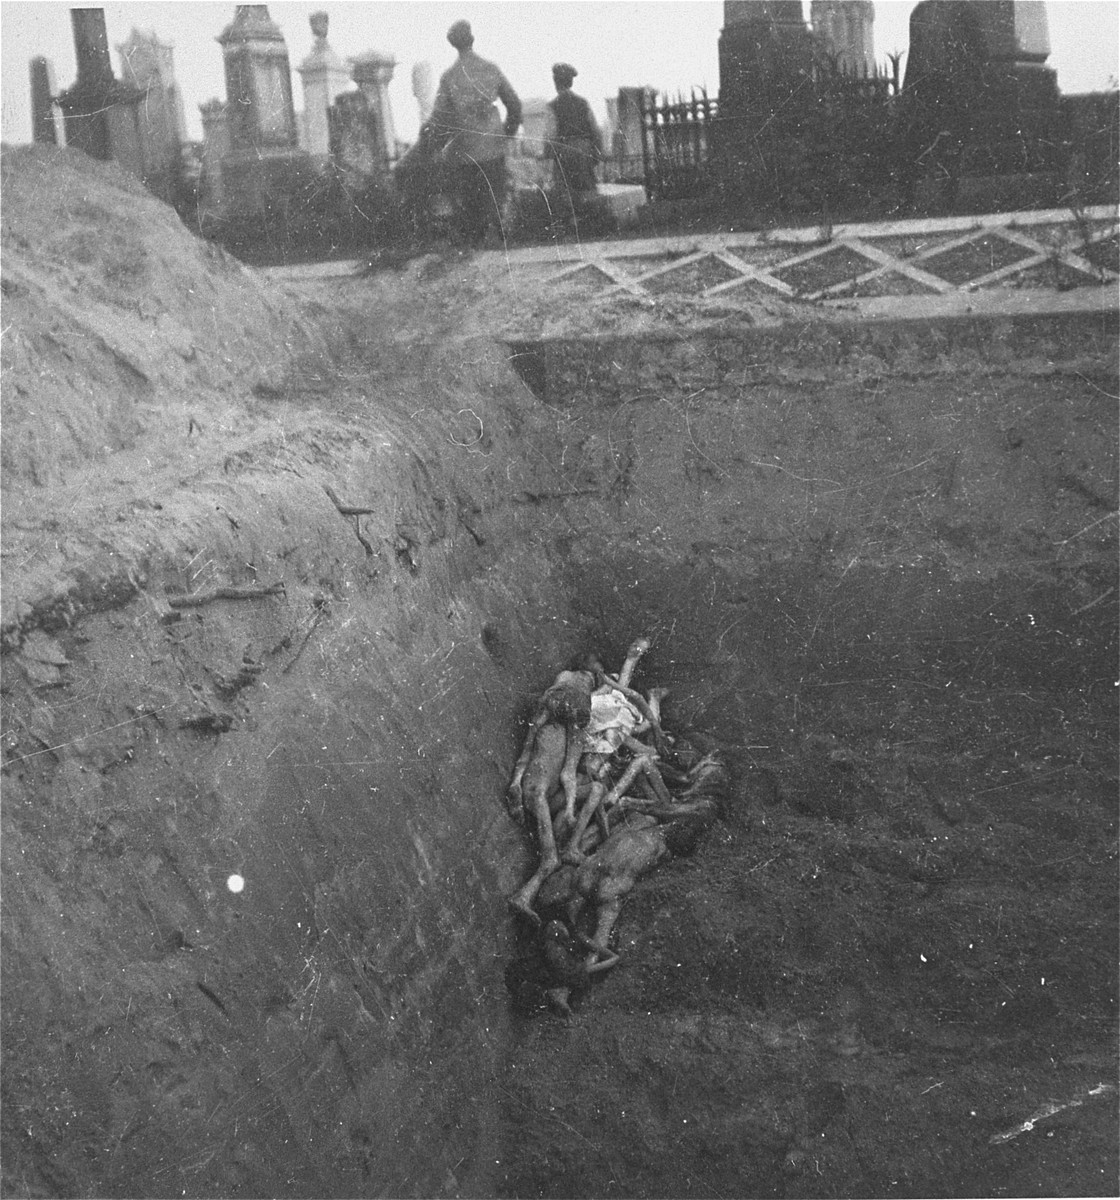 """After unloading the grim contents of their cart, gravediggers in the Warsaw ghetto cemetery leave to collect more bodies for burial in a mass grave.    Joest's caption reads: """"As soon as the body-cart was empty, it went back again for more."""""""